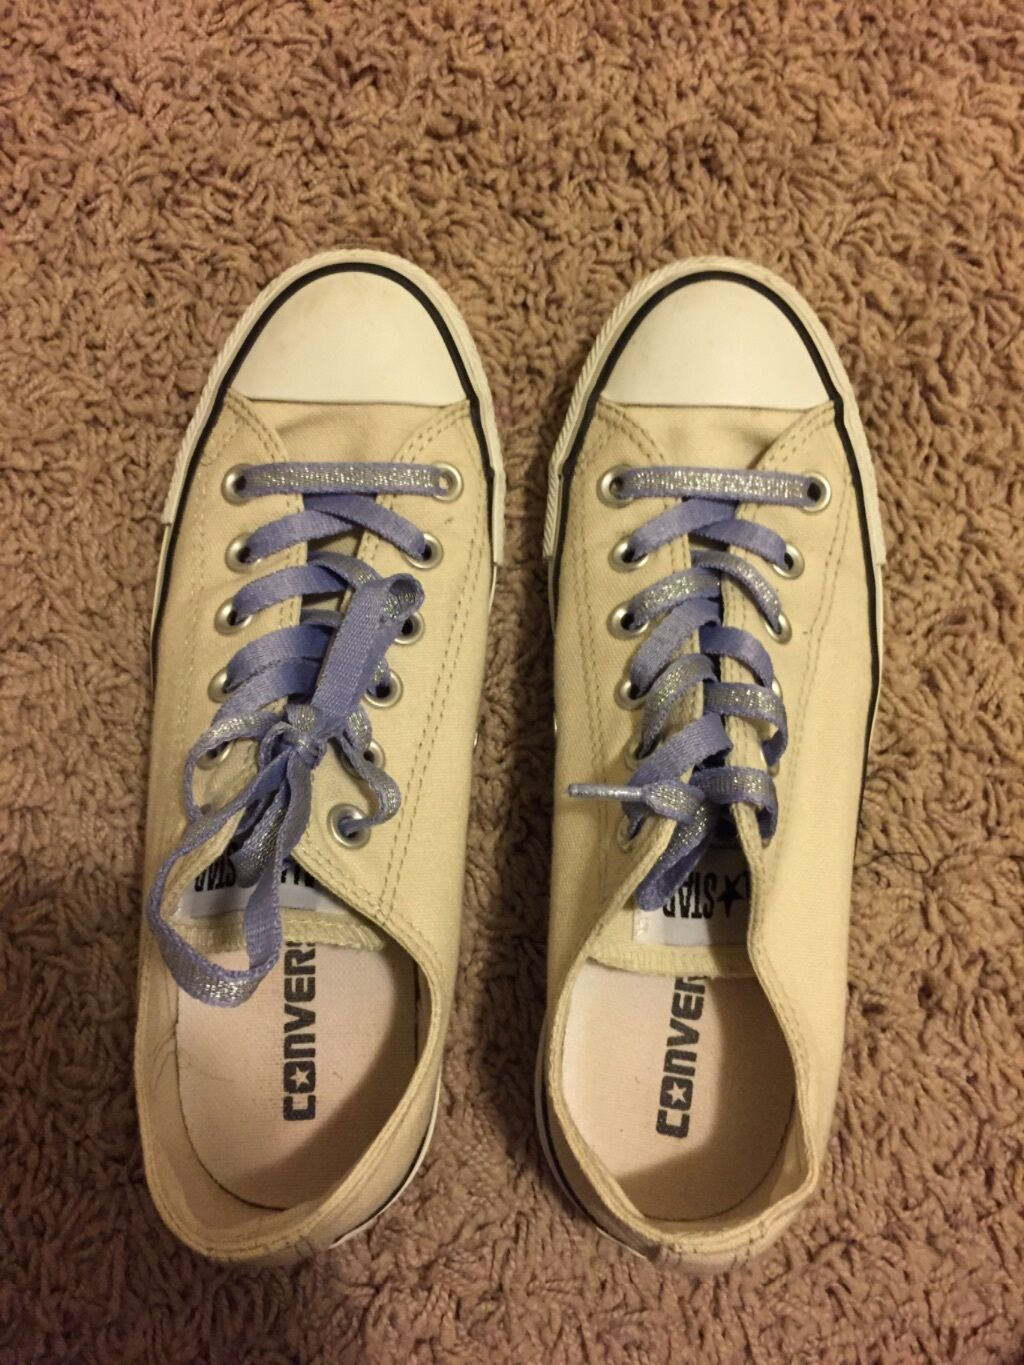 Converse his white US 7 First class in his Converse class  Athletic Shoes f24a46